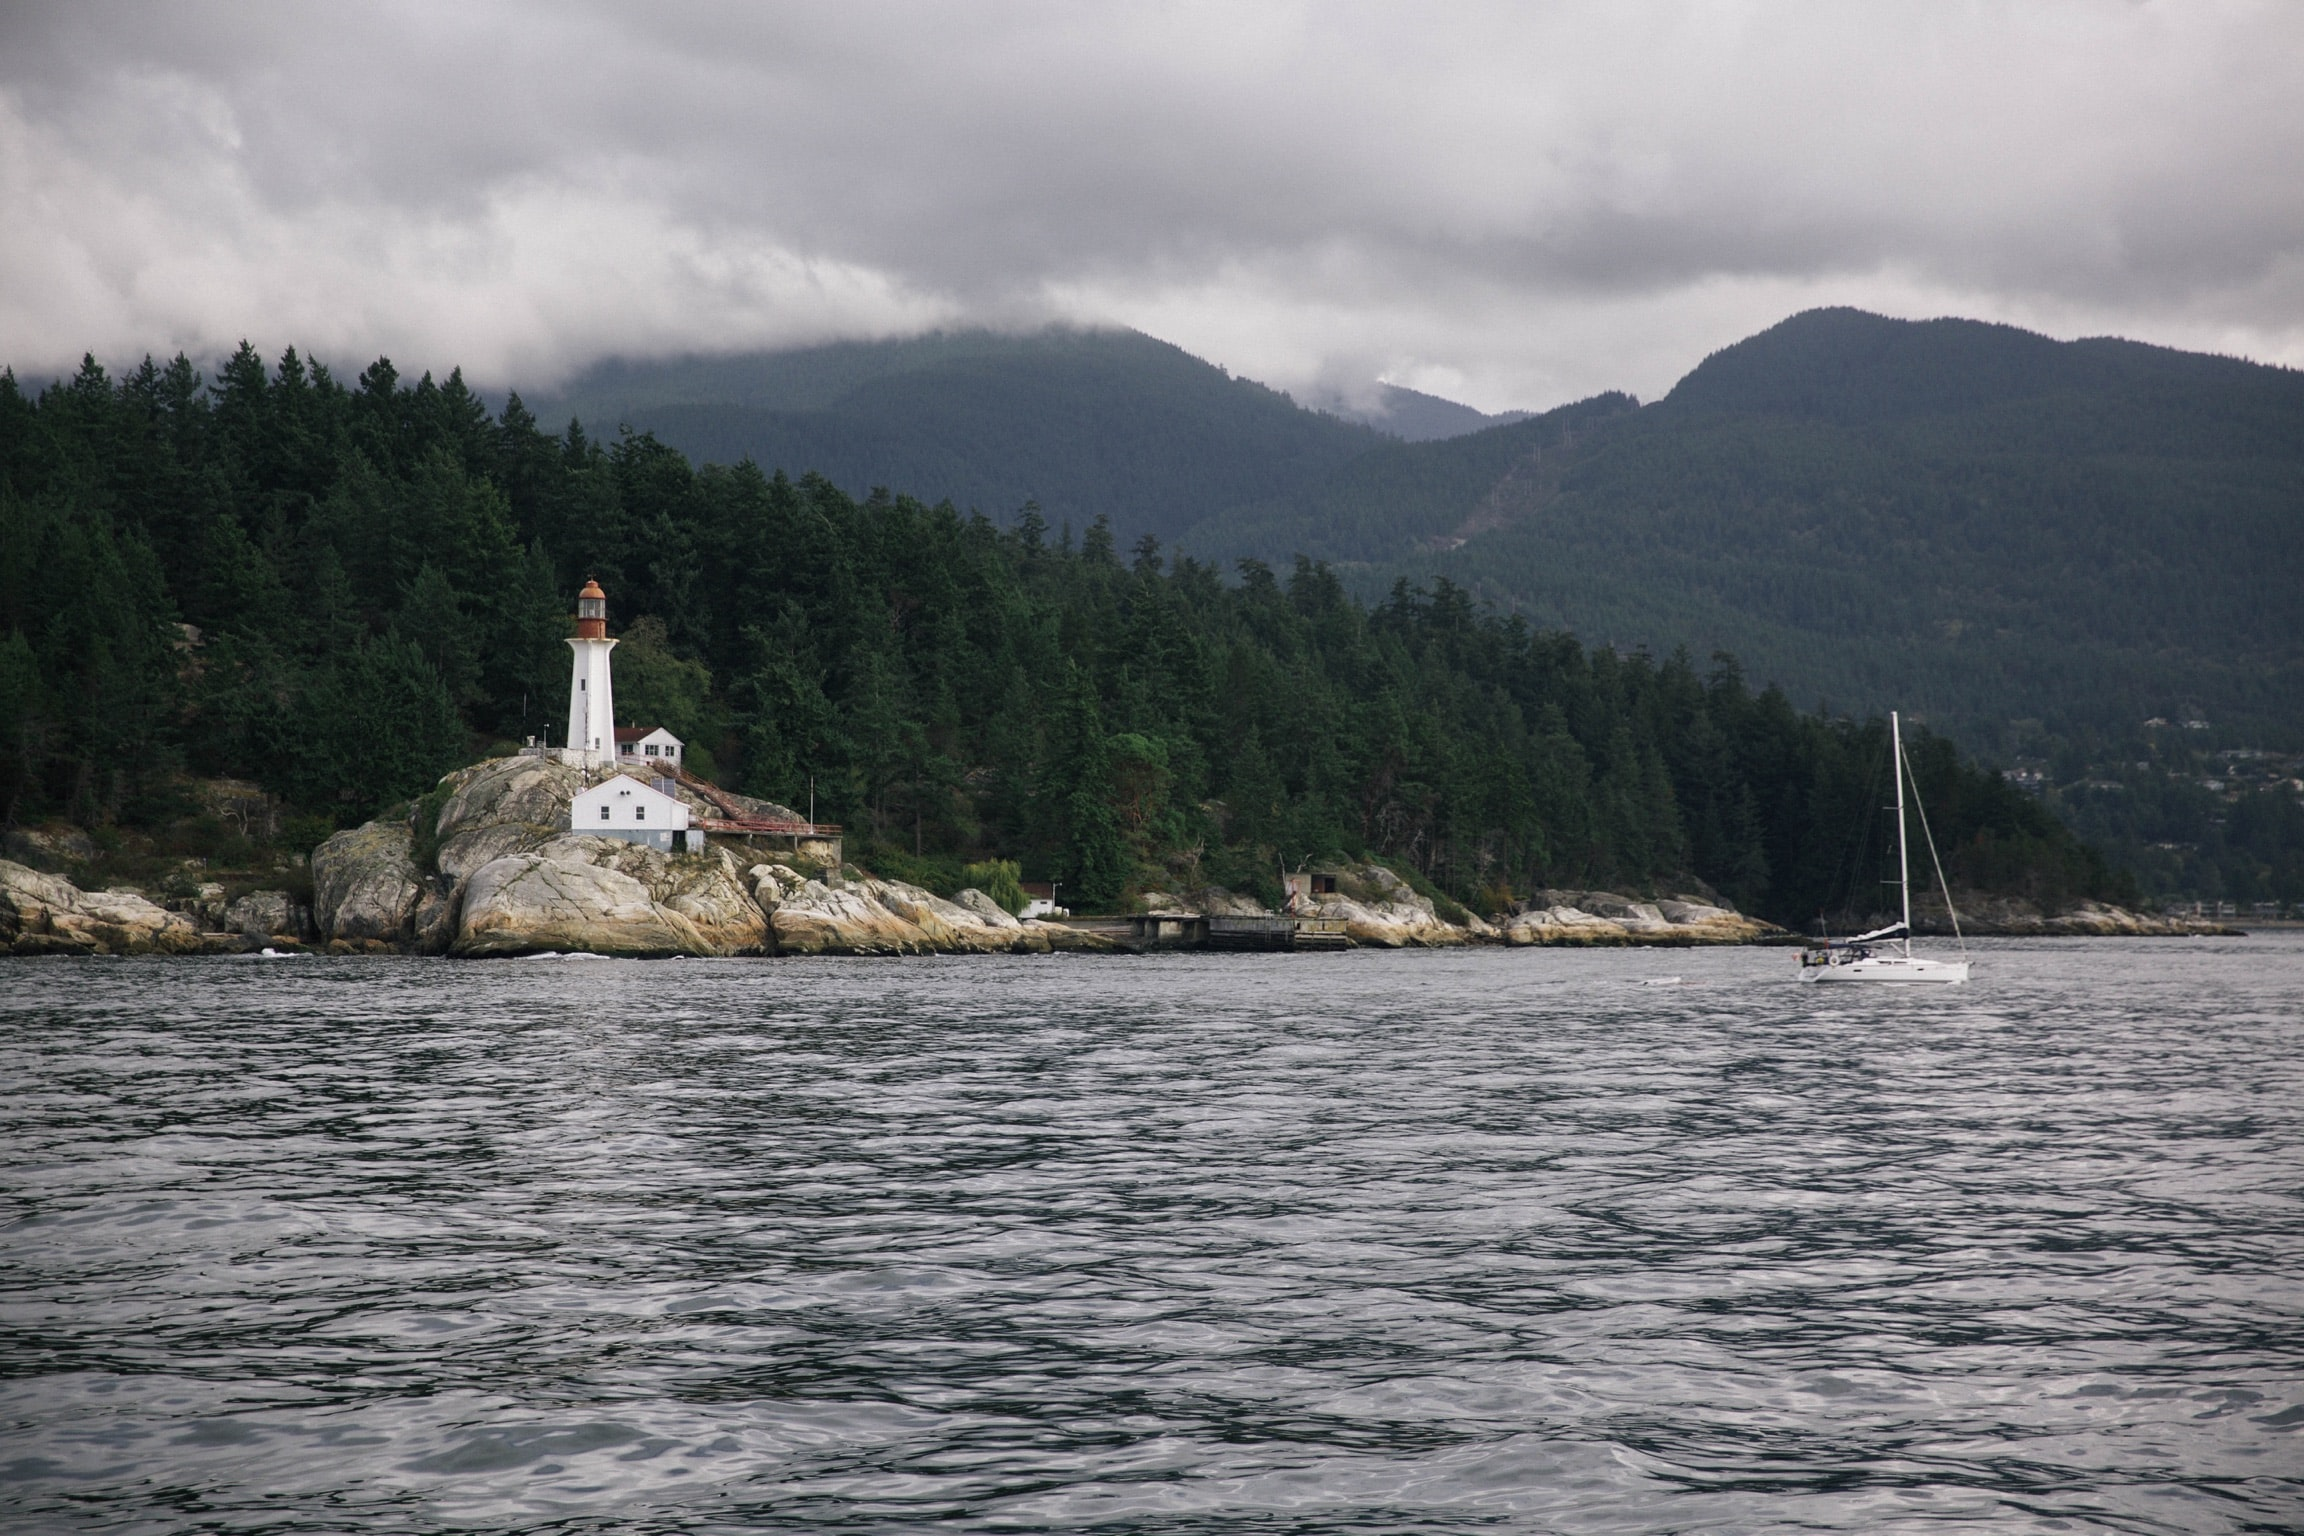 A lighthouse on a rocky shore in Vancouver